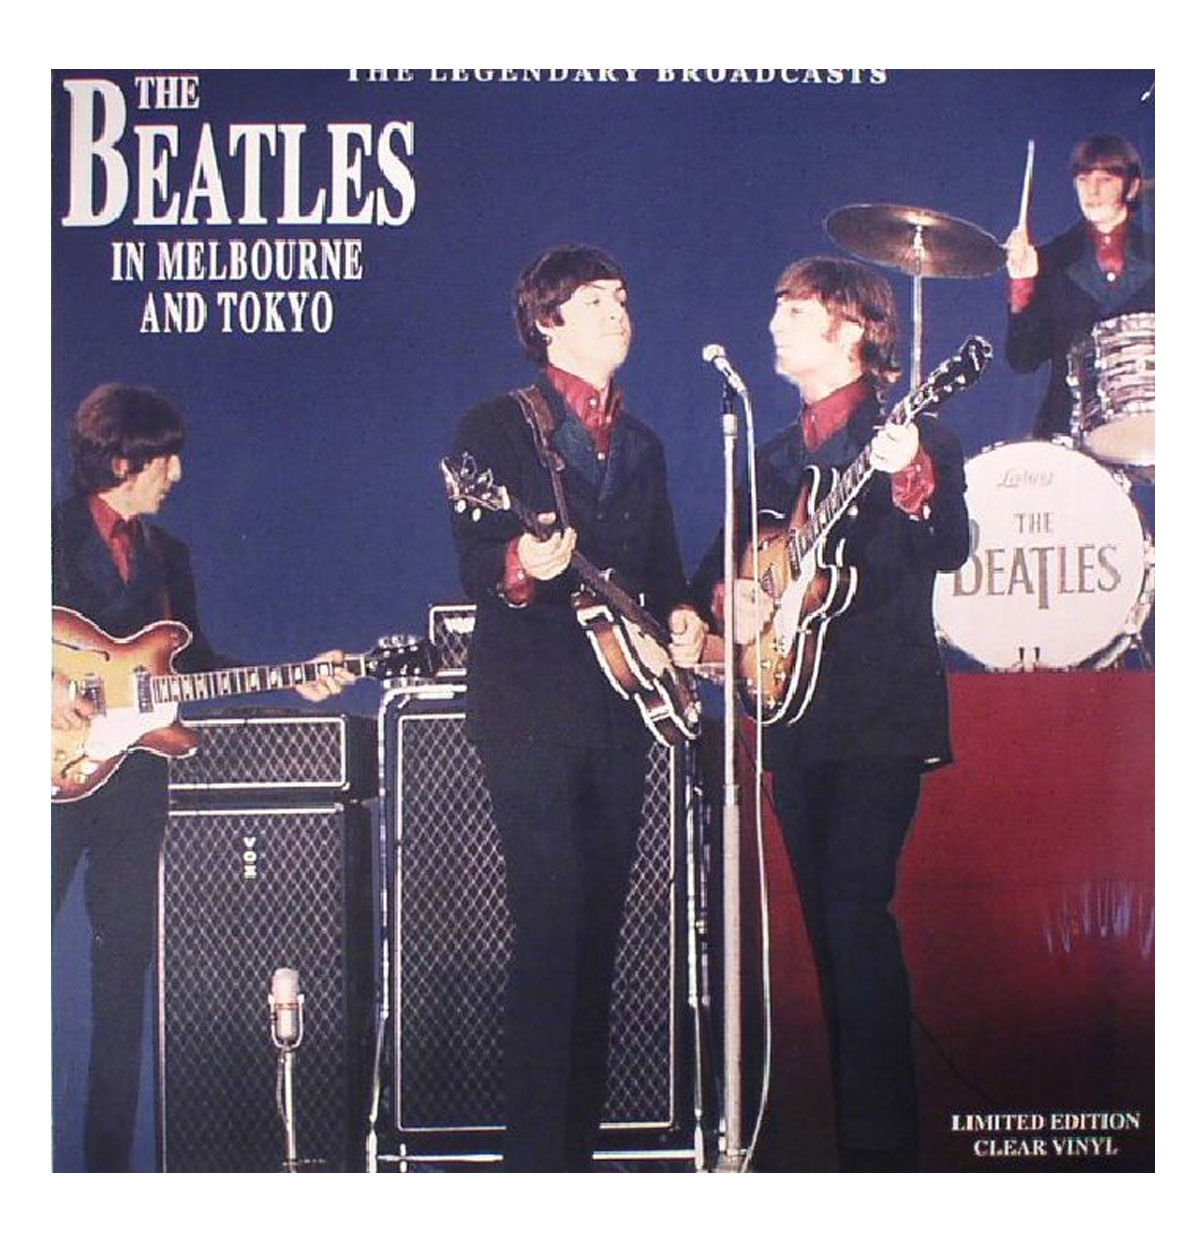 The Beatles - In Melbourne And Tokyo LP - LIMITED EDITION